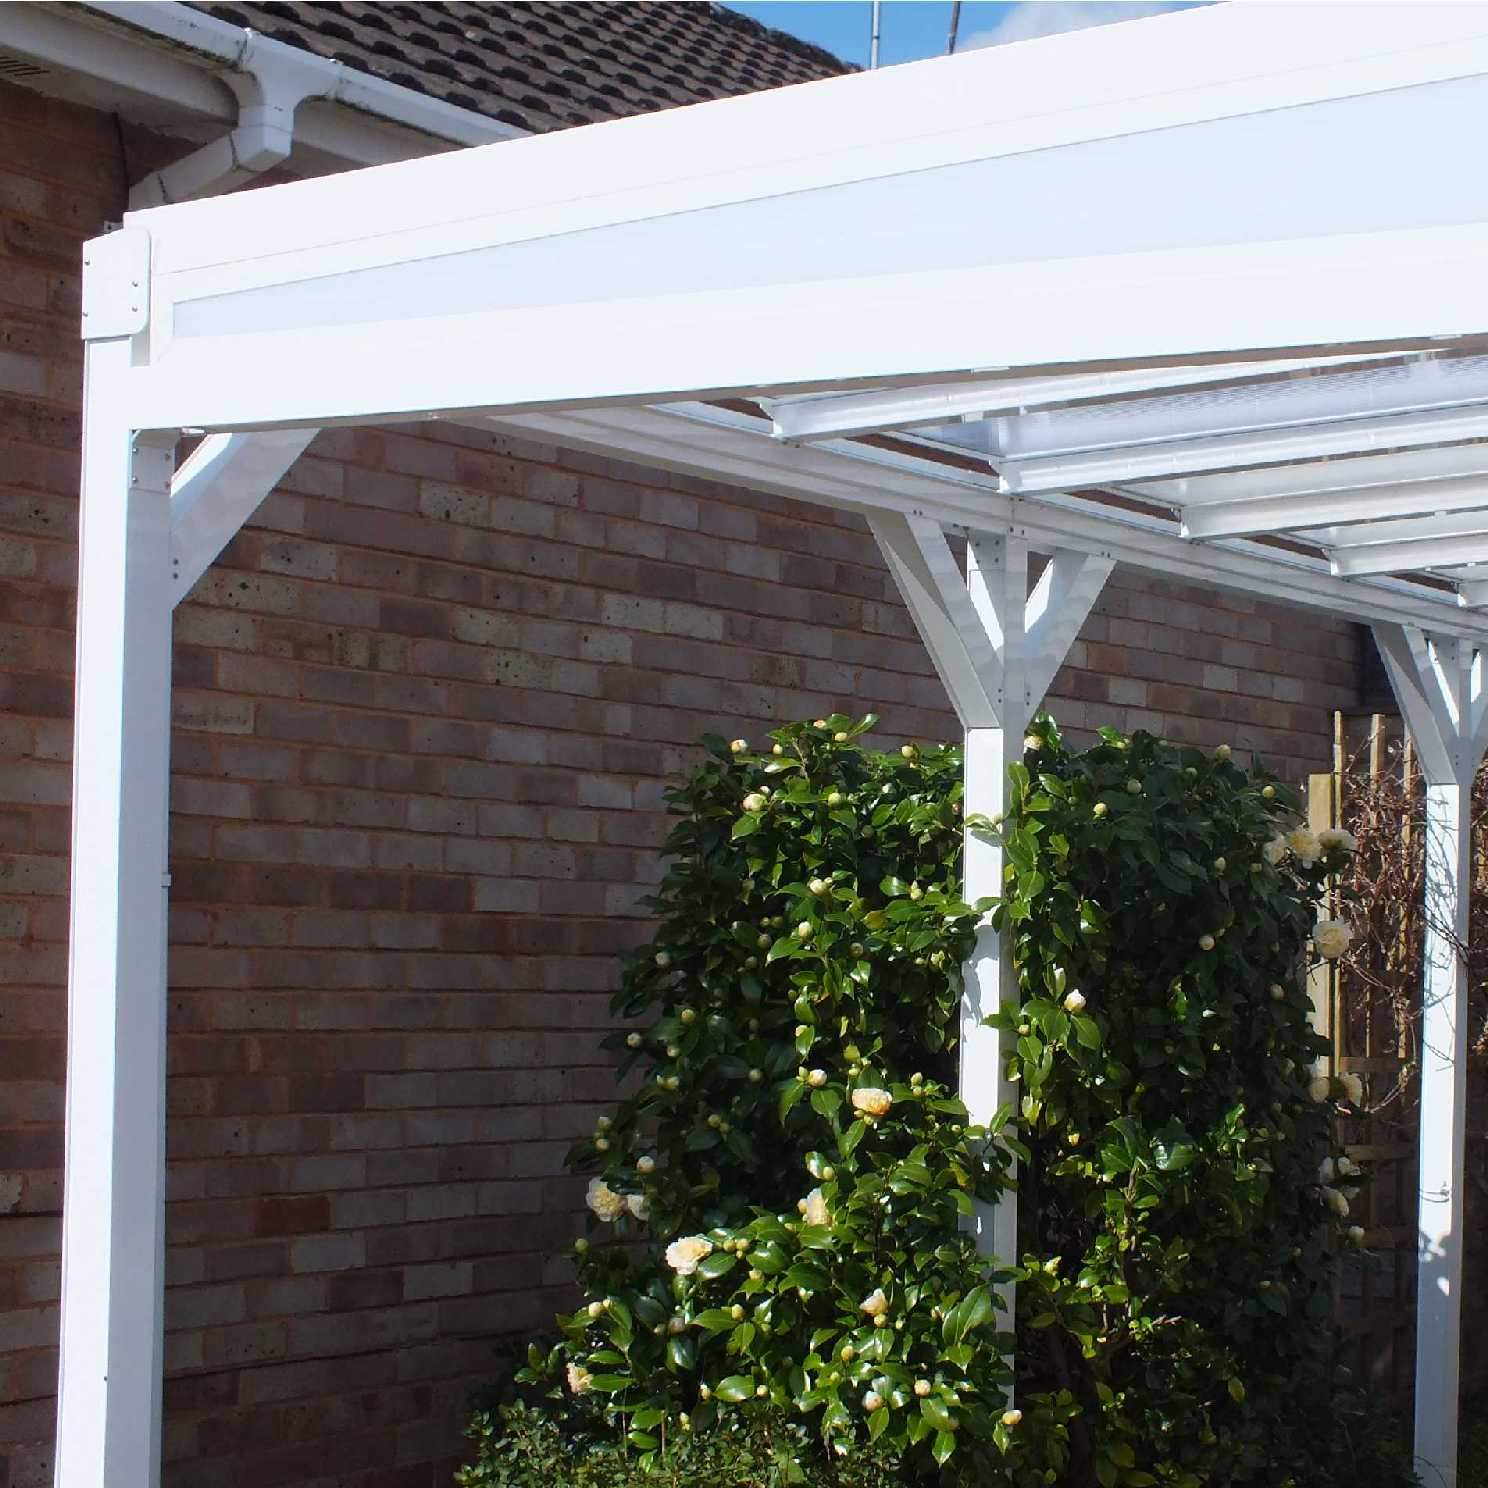 Omega Smart Lean-To Canopy with 16mm Polycarbonate Glazing - 8.4m (W) x 3.5m (P), (4) Supporting Posts from Omega Build